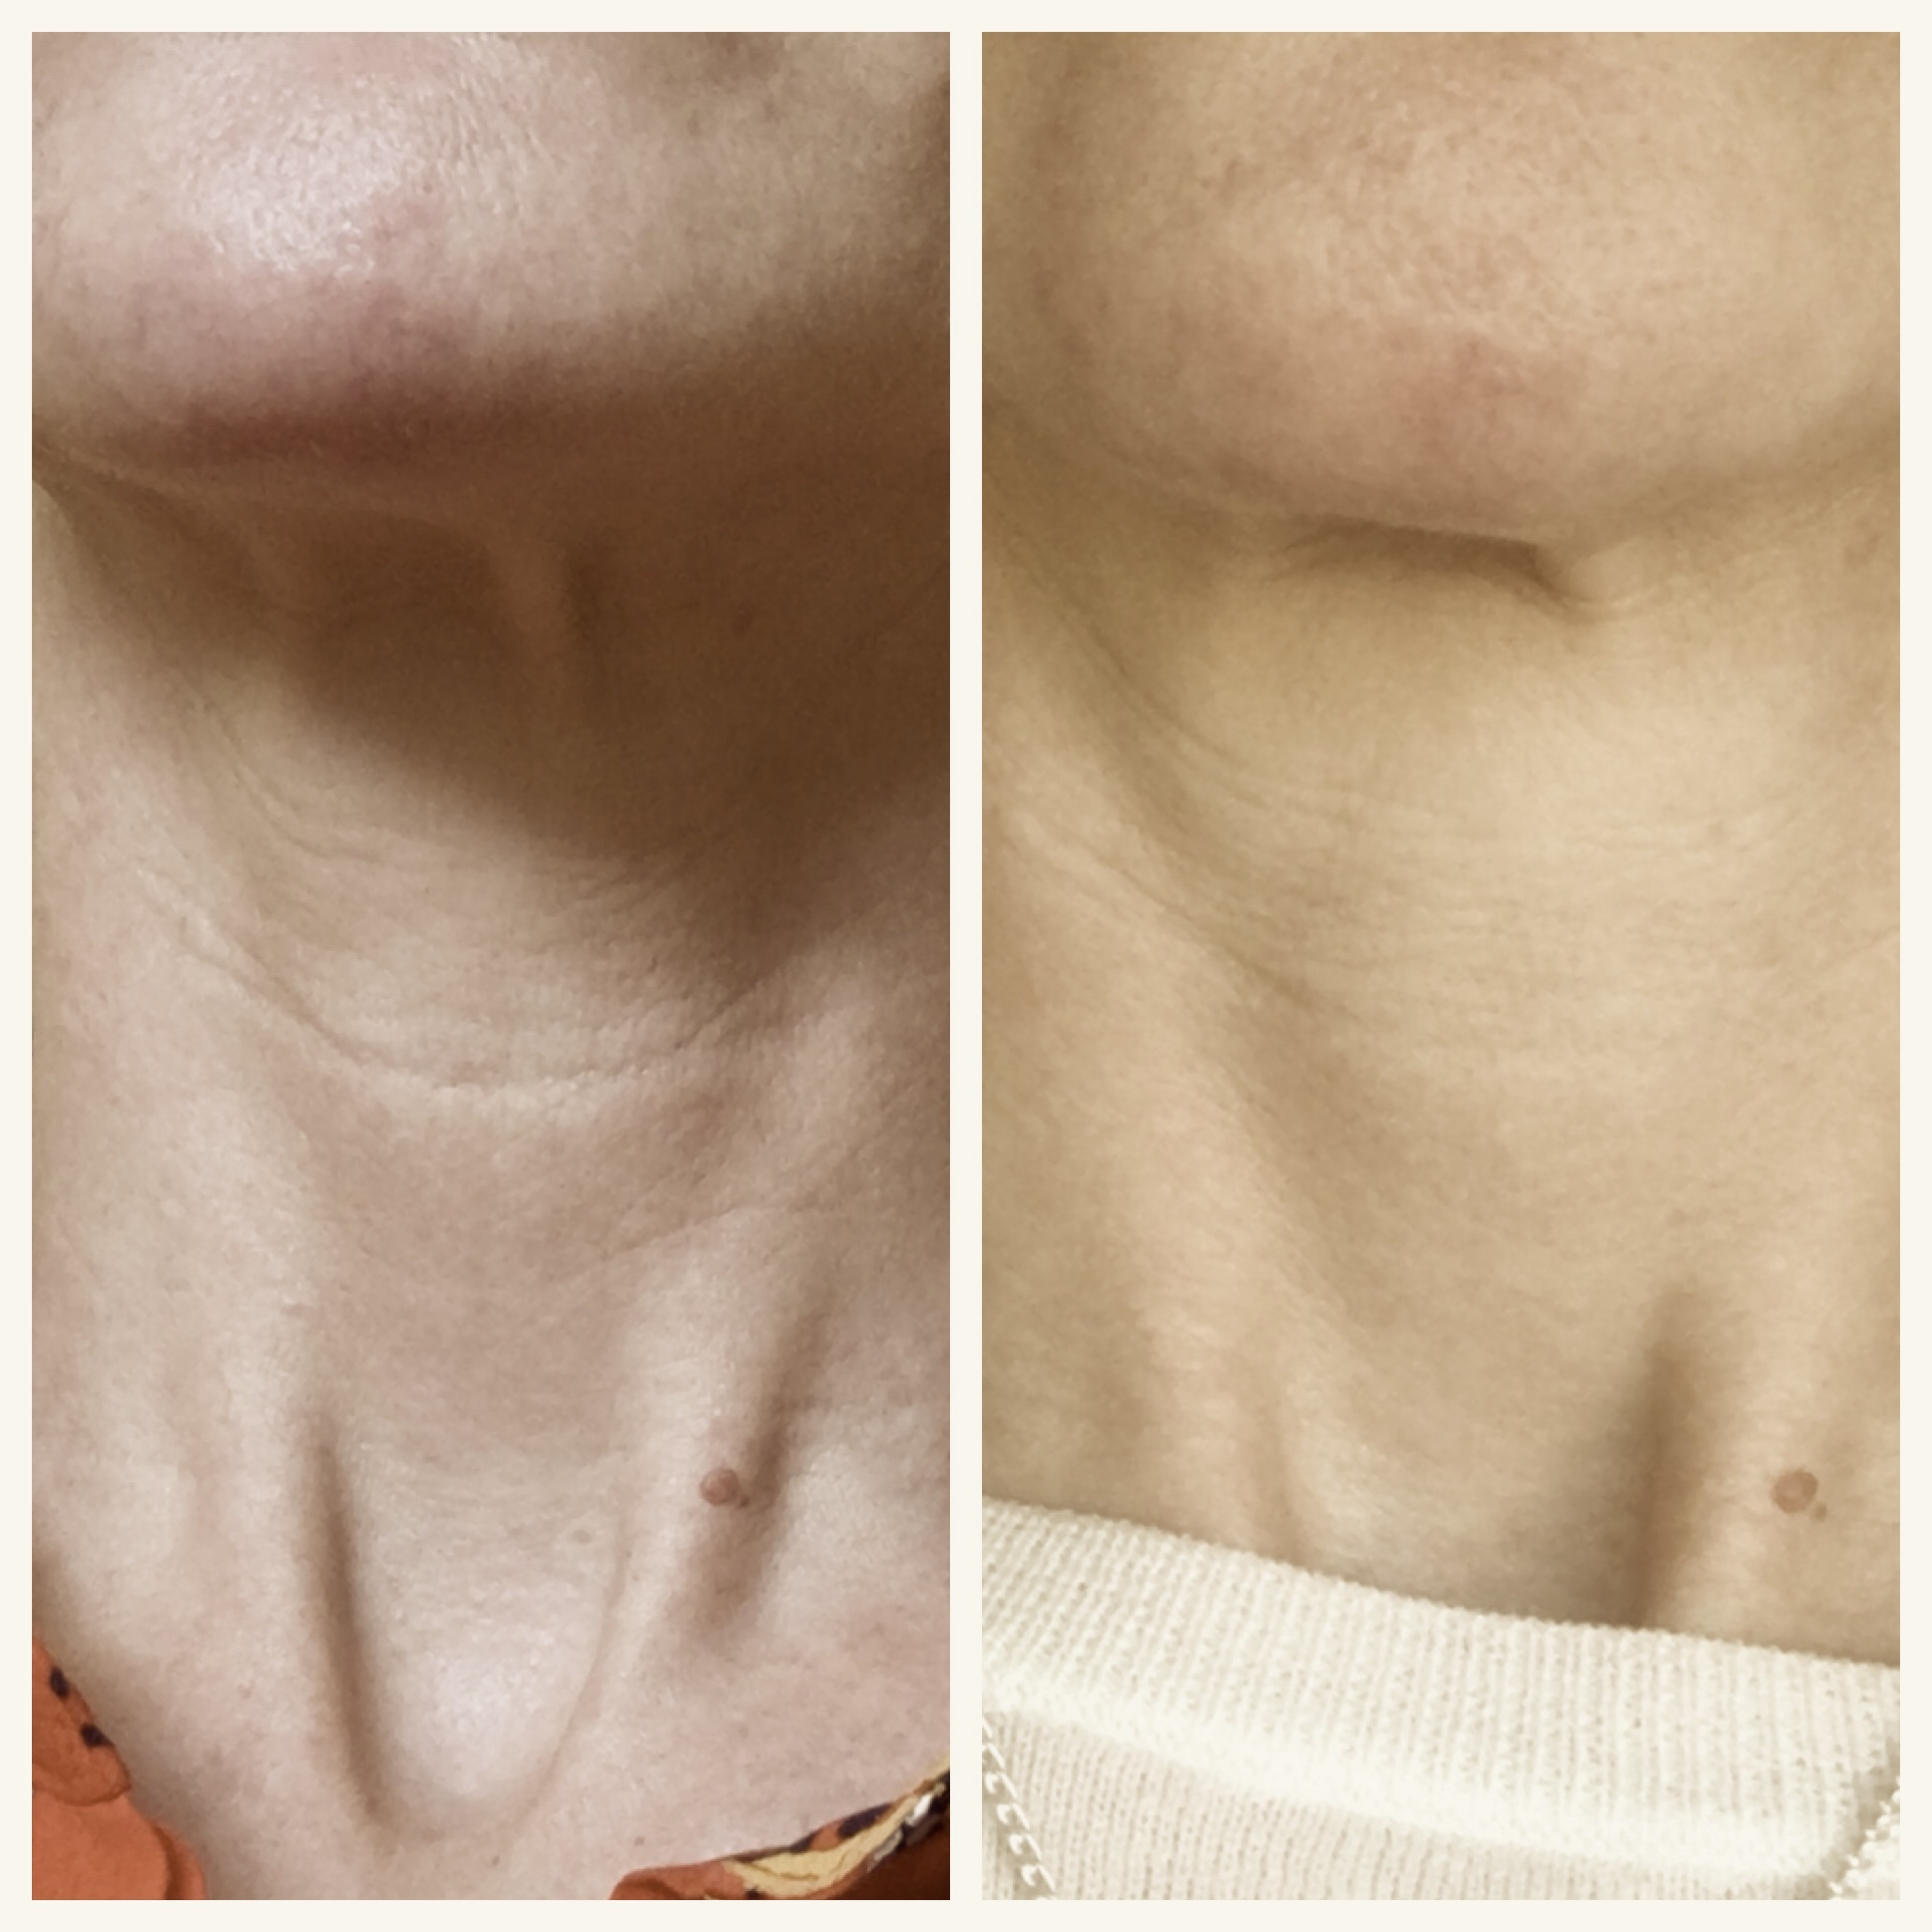 My neck before (left)and after treatment. The light's not the same, but you can see the change